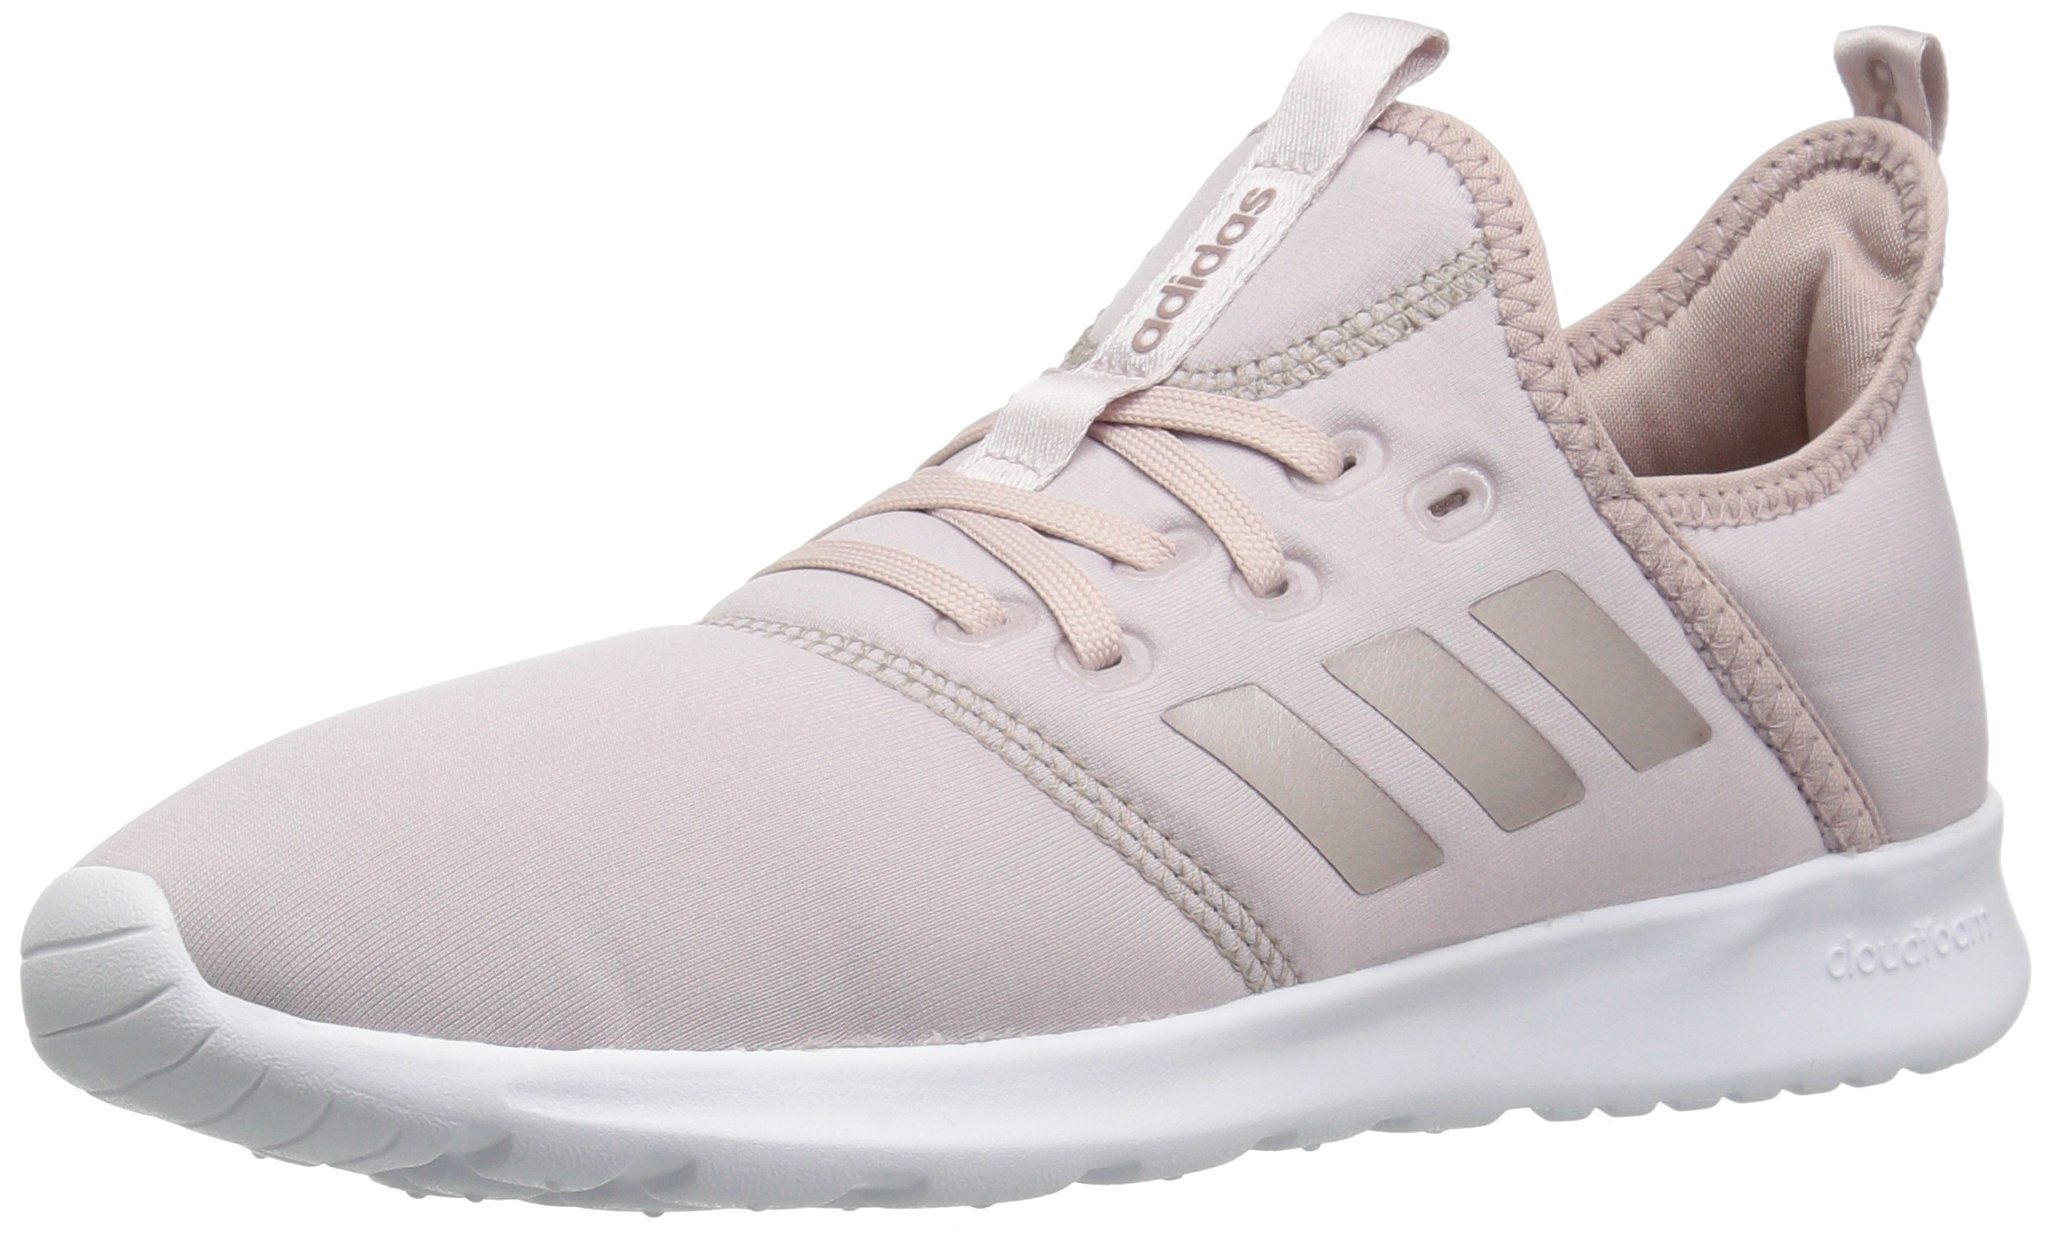 adidas Women's Cloudfoam Pure, Ice Purple/Vapour Grey/Vapour Grey, 5.5 M US